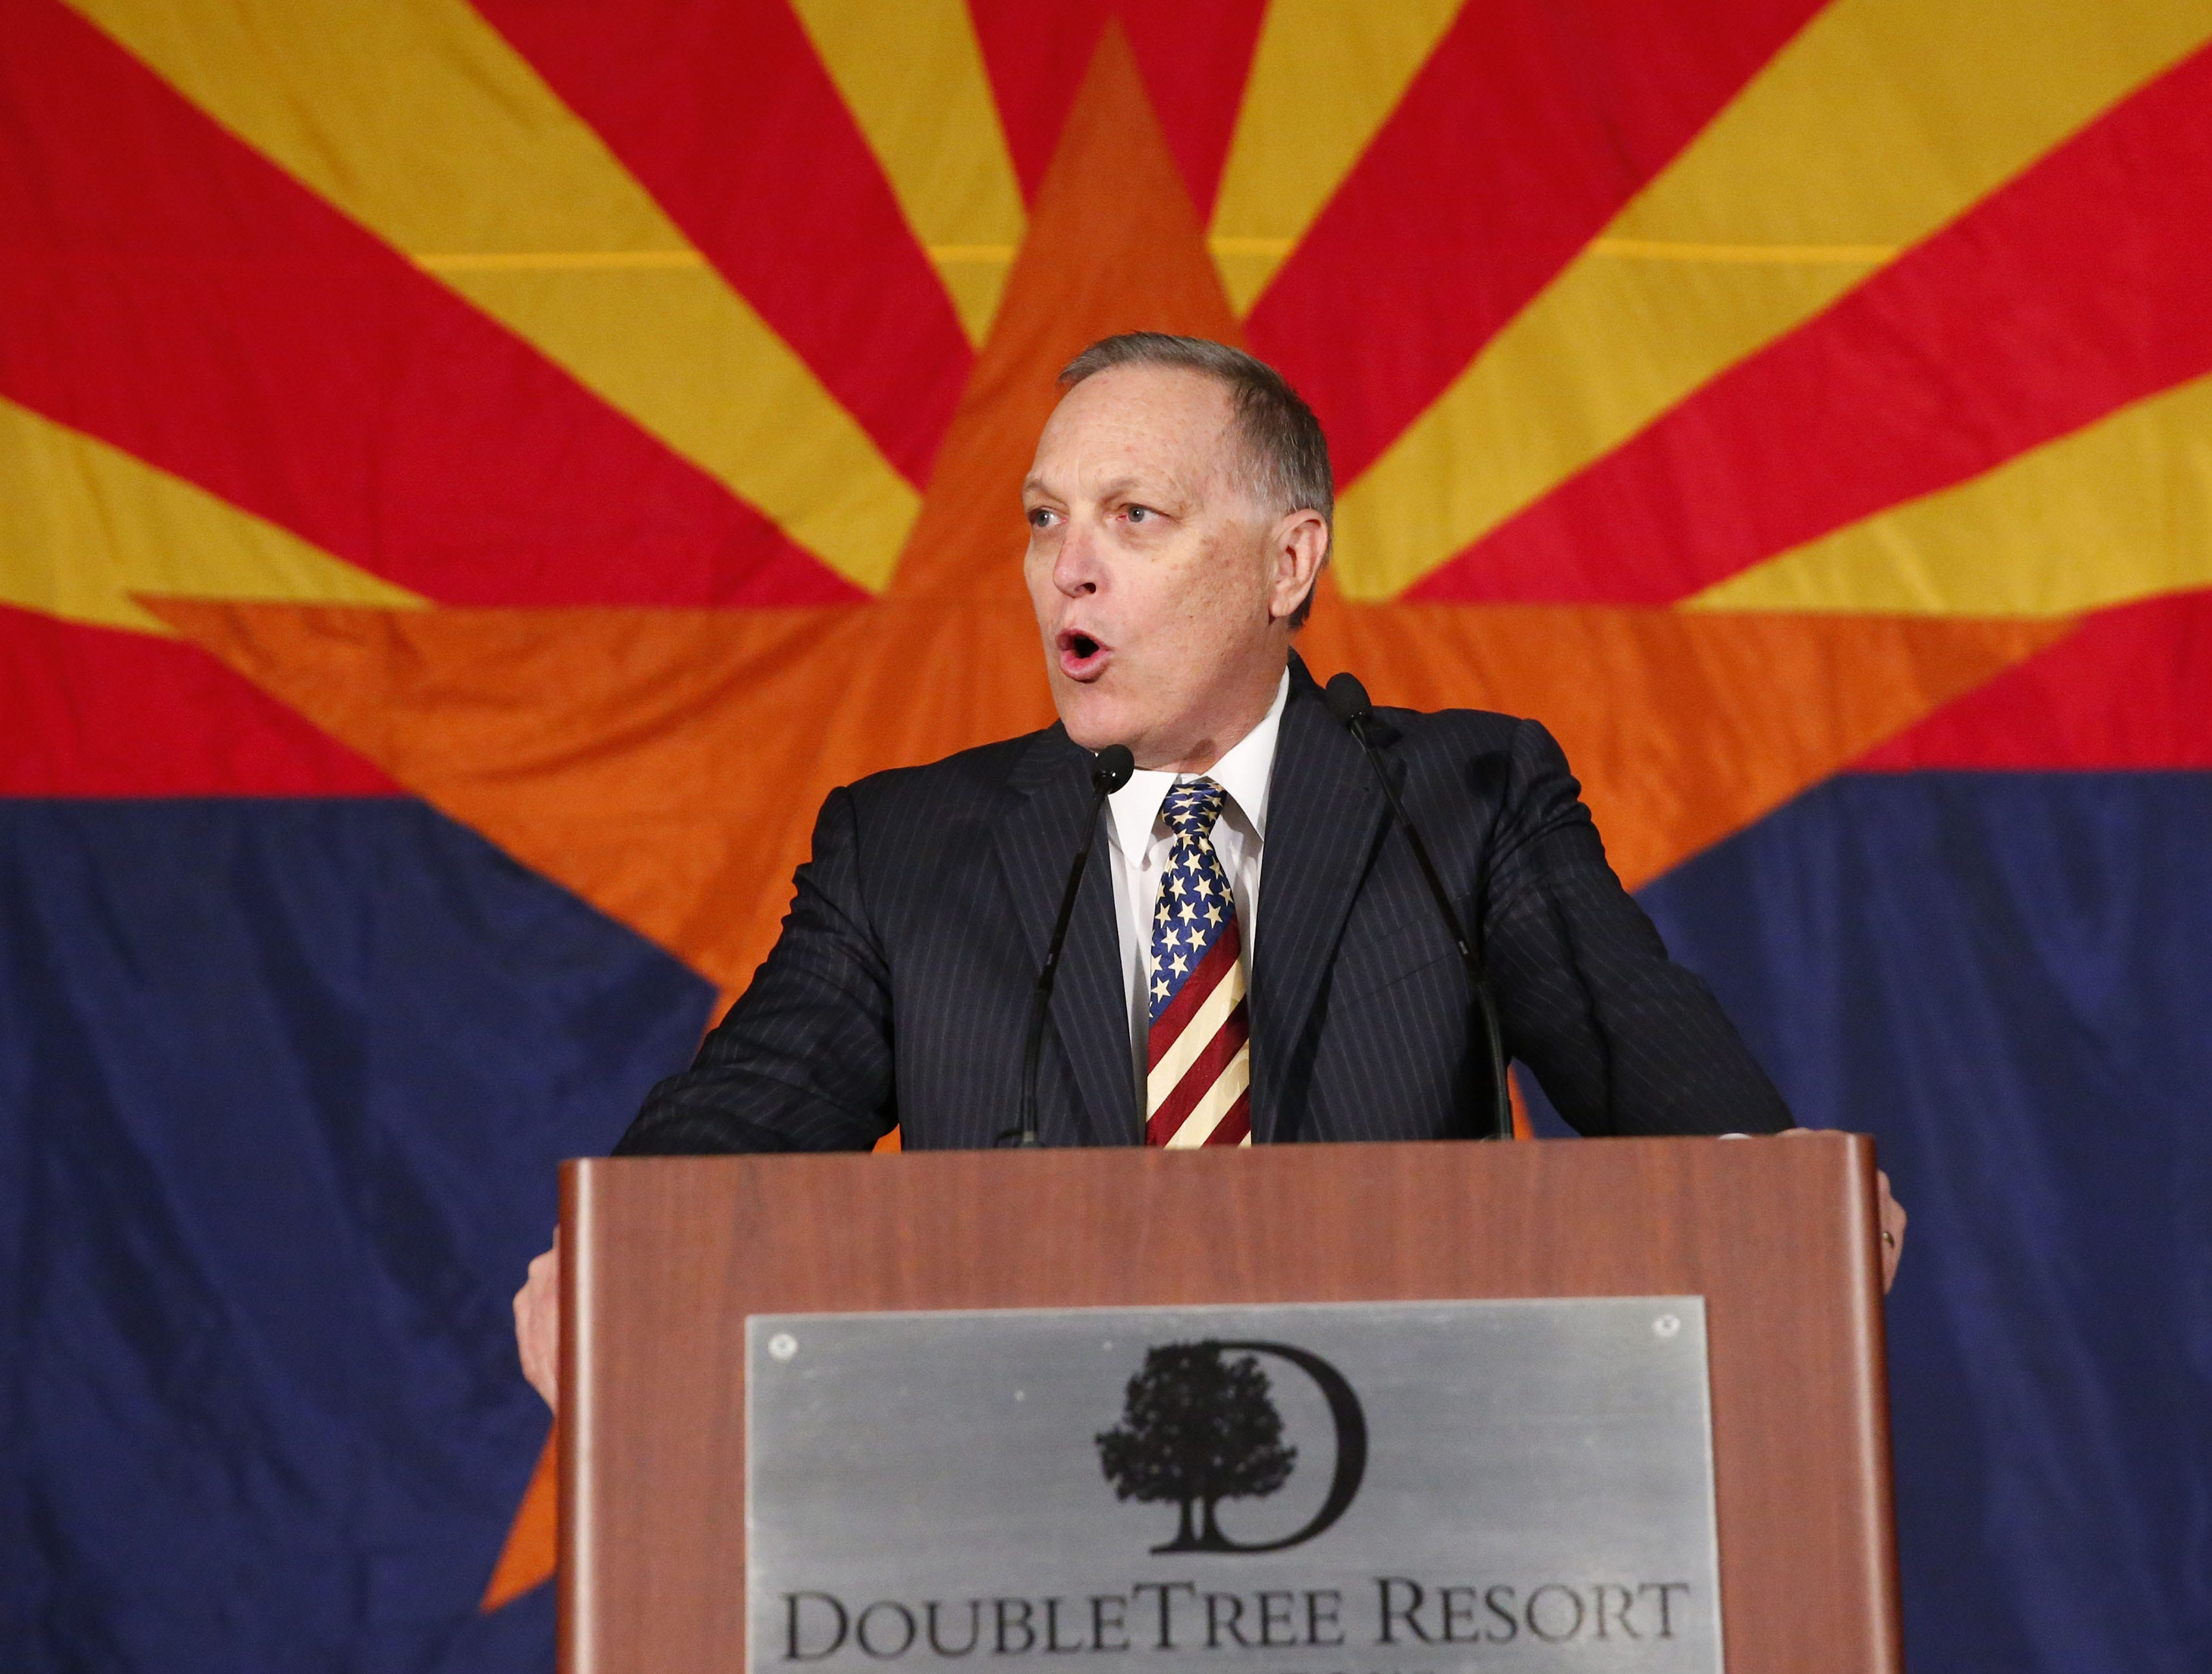 Congressman Andy Biggs speaks during the Arizona Republican Party Election Night party in Scottsdale Nov. 6, 2018.